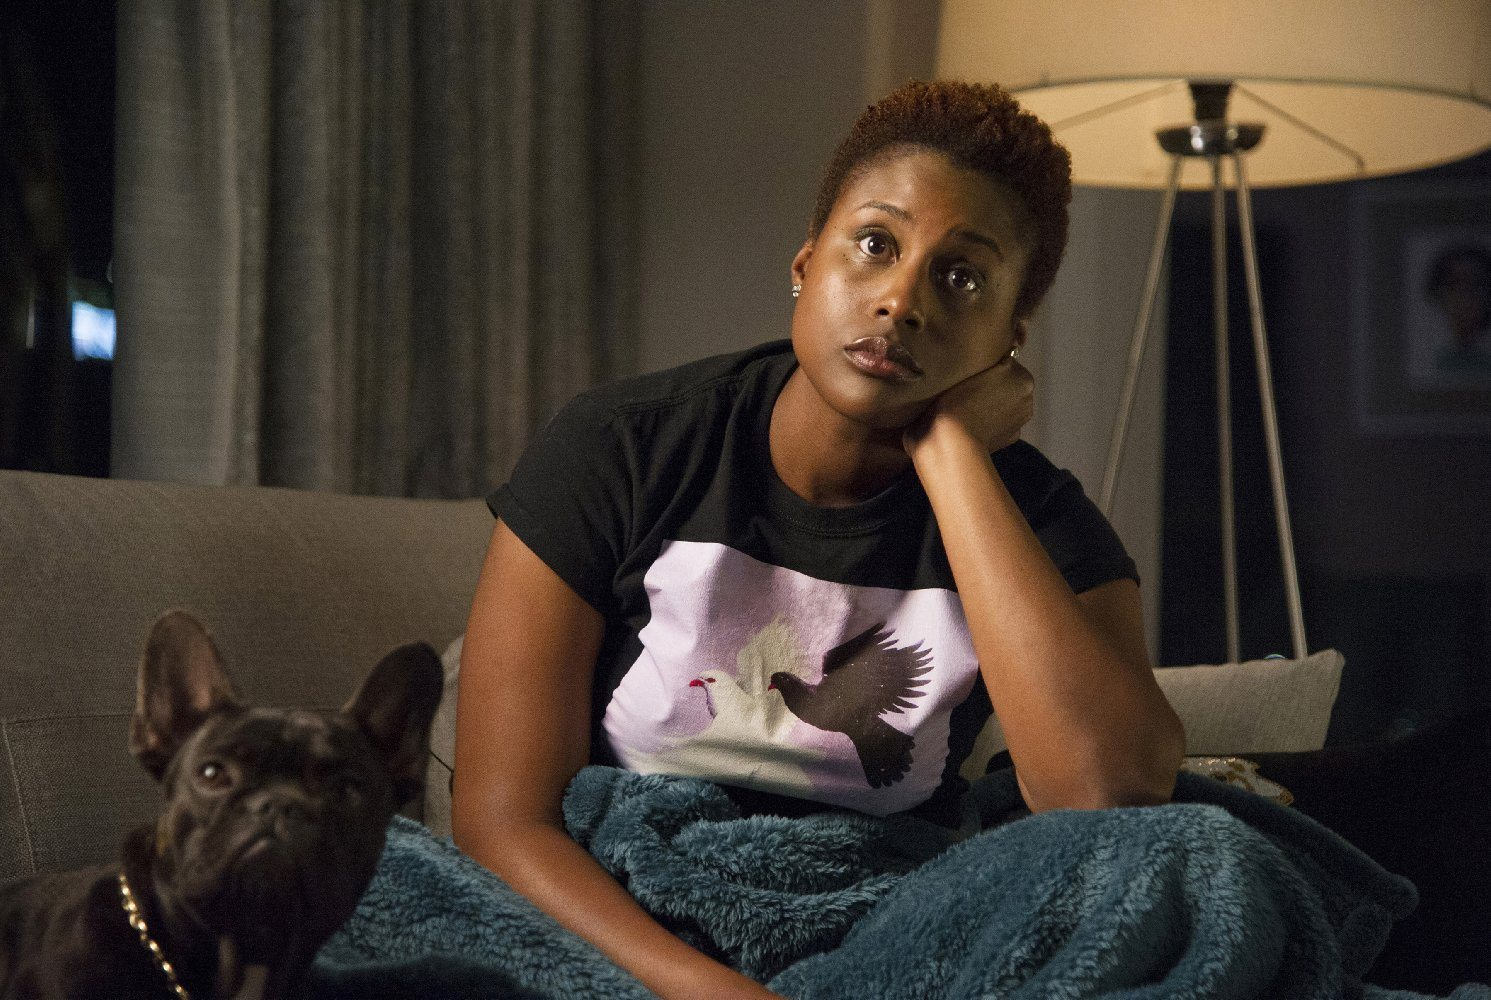 Issa Rae with her head resting on her hand sitting on a couch next to a French Bull Dog